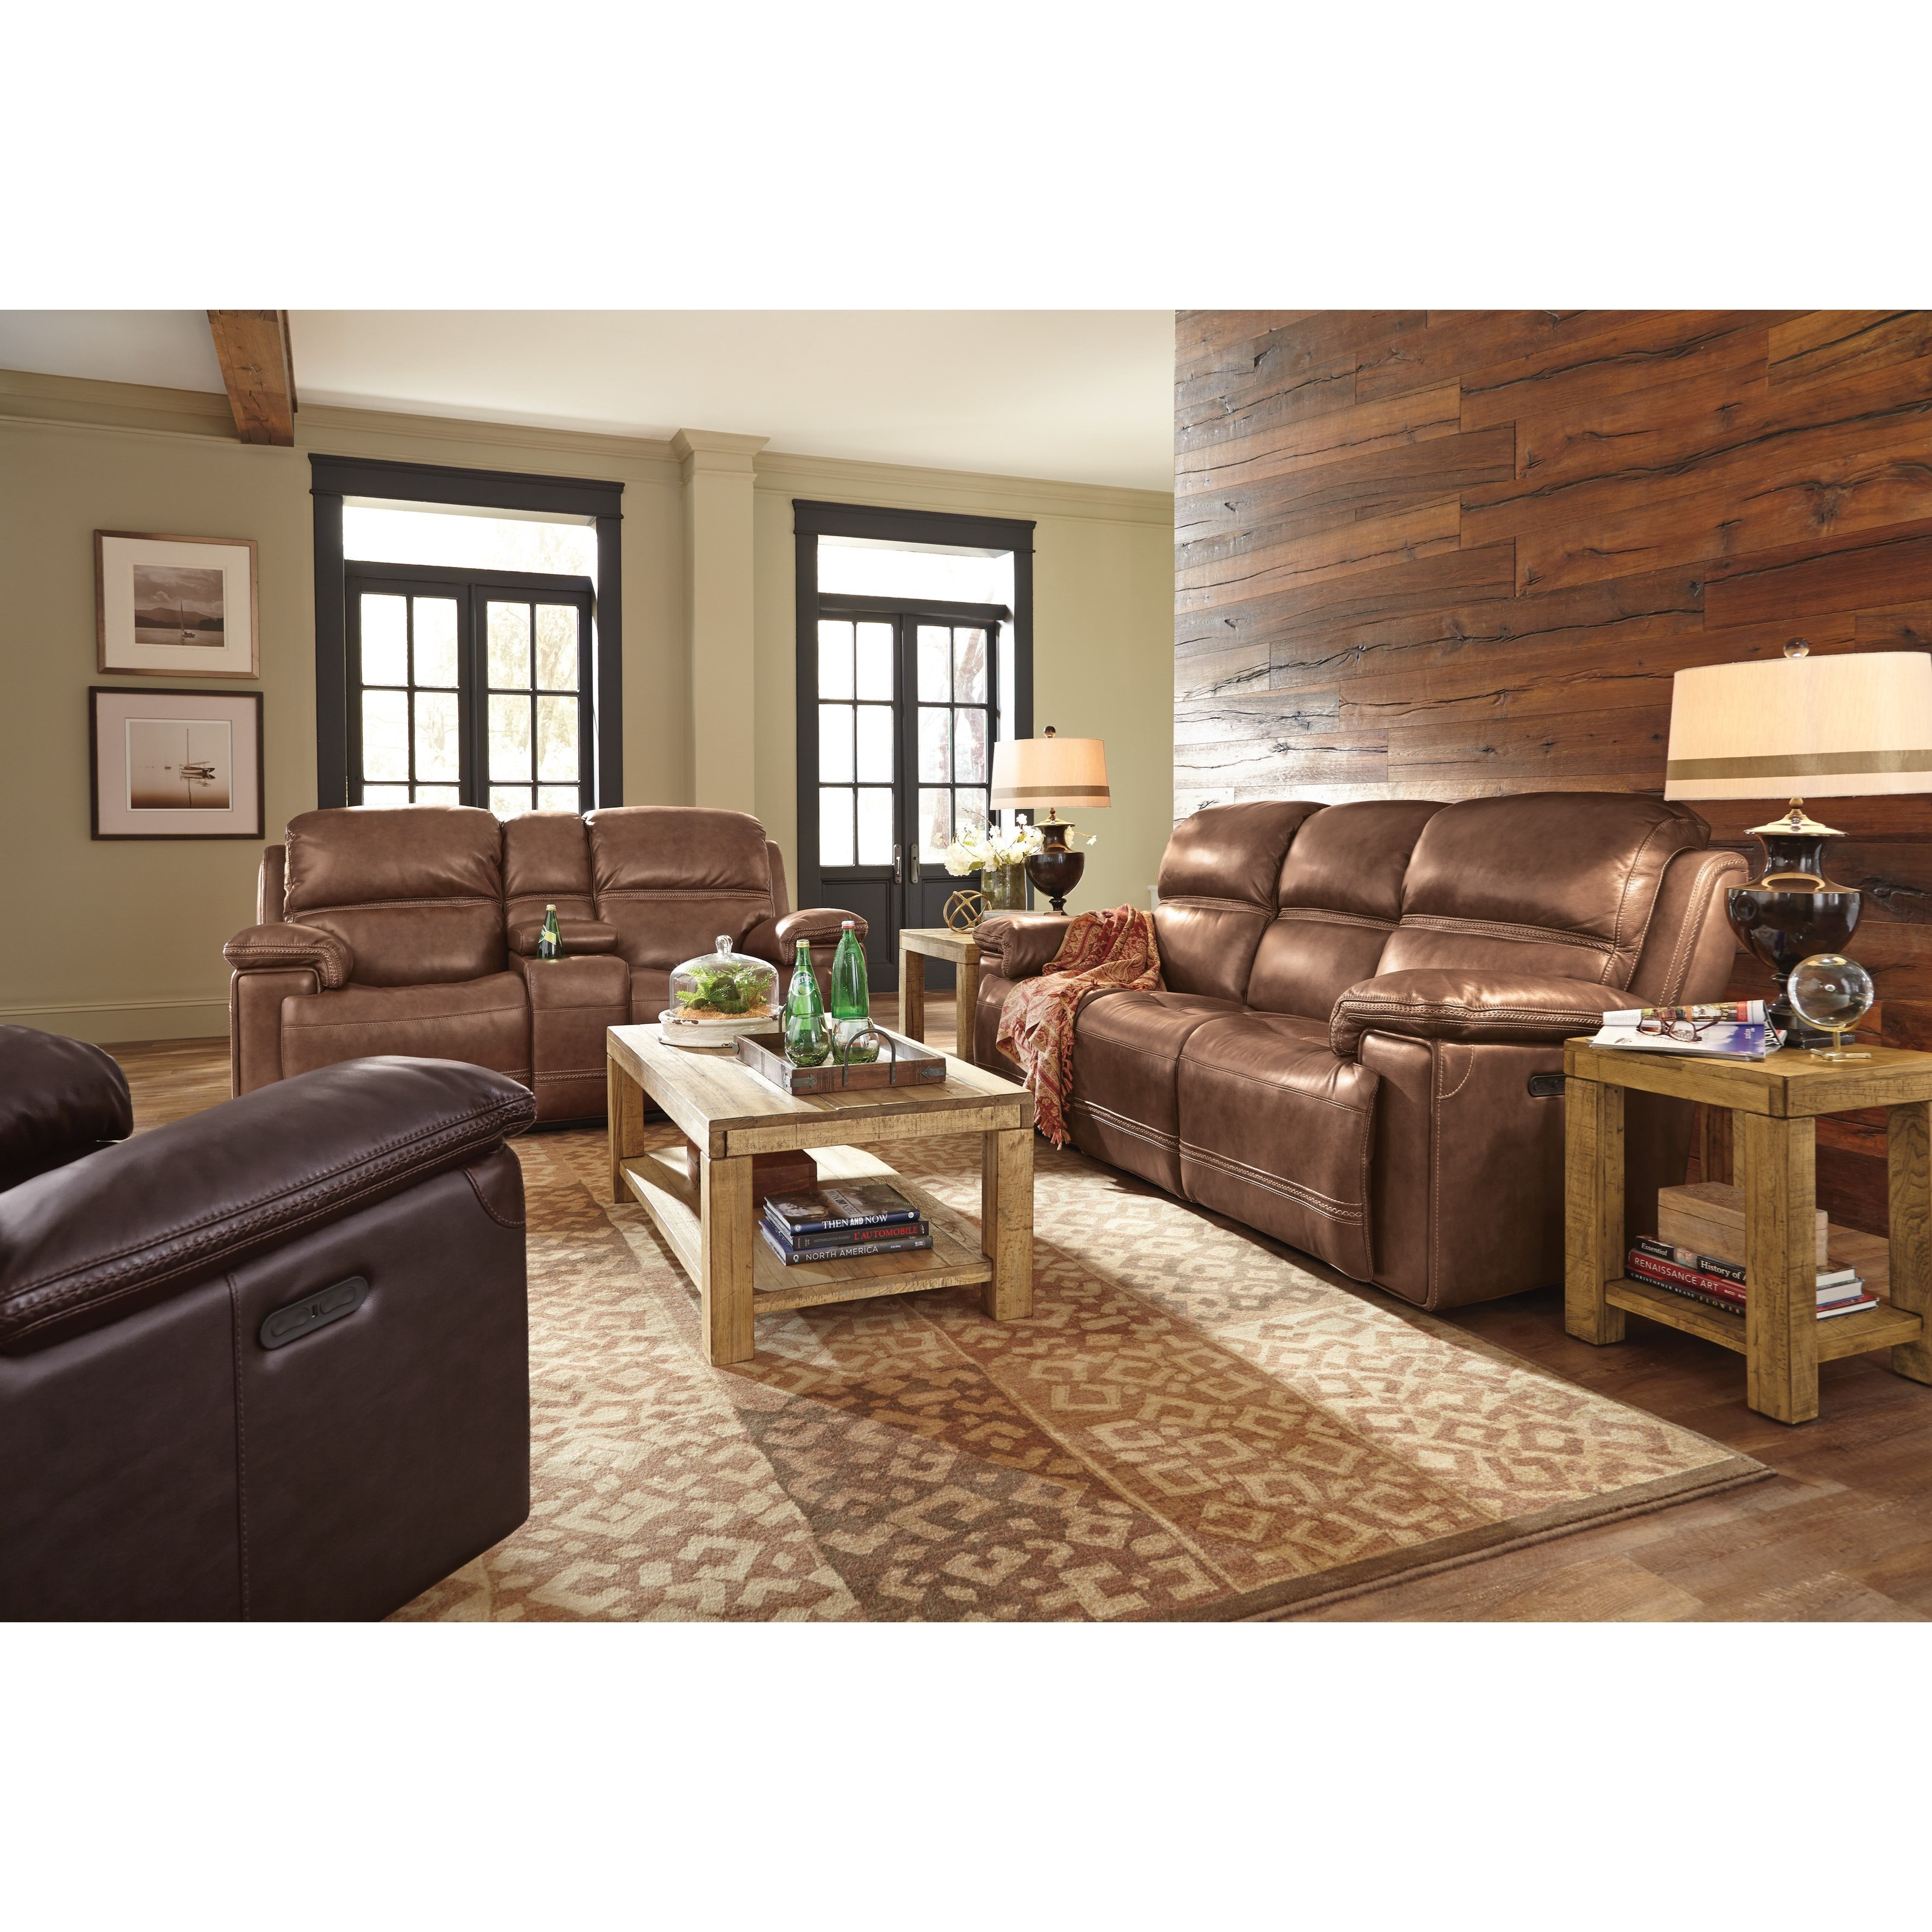 Park Living Room Group Flexsteel Park by Flexsteel at Crowley Furniture & Mattress